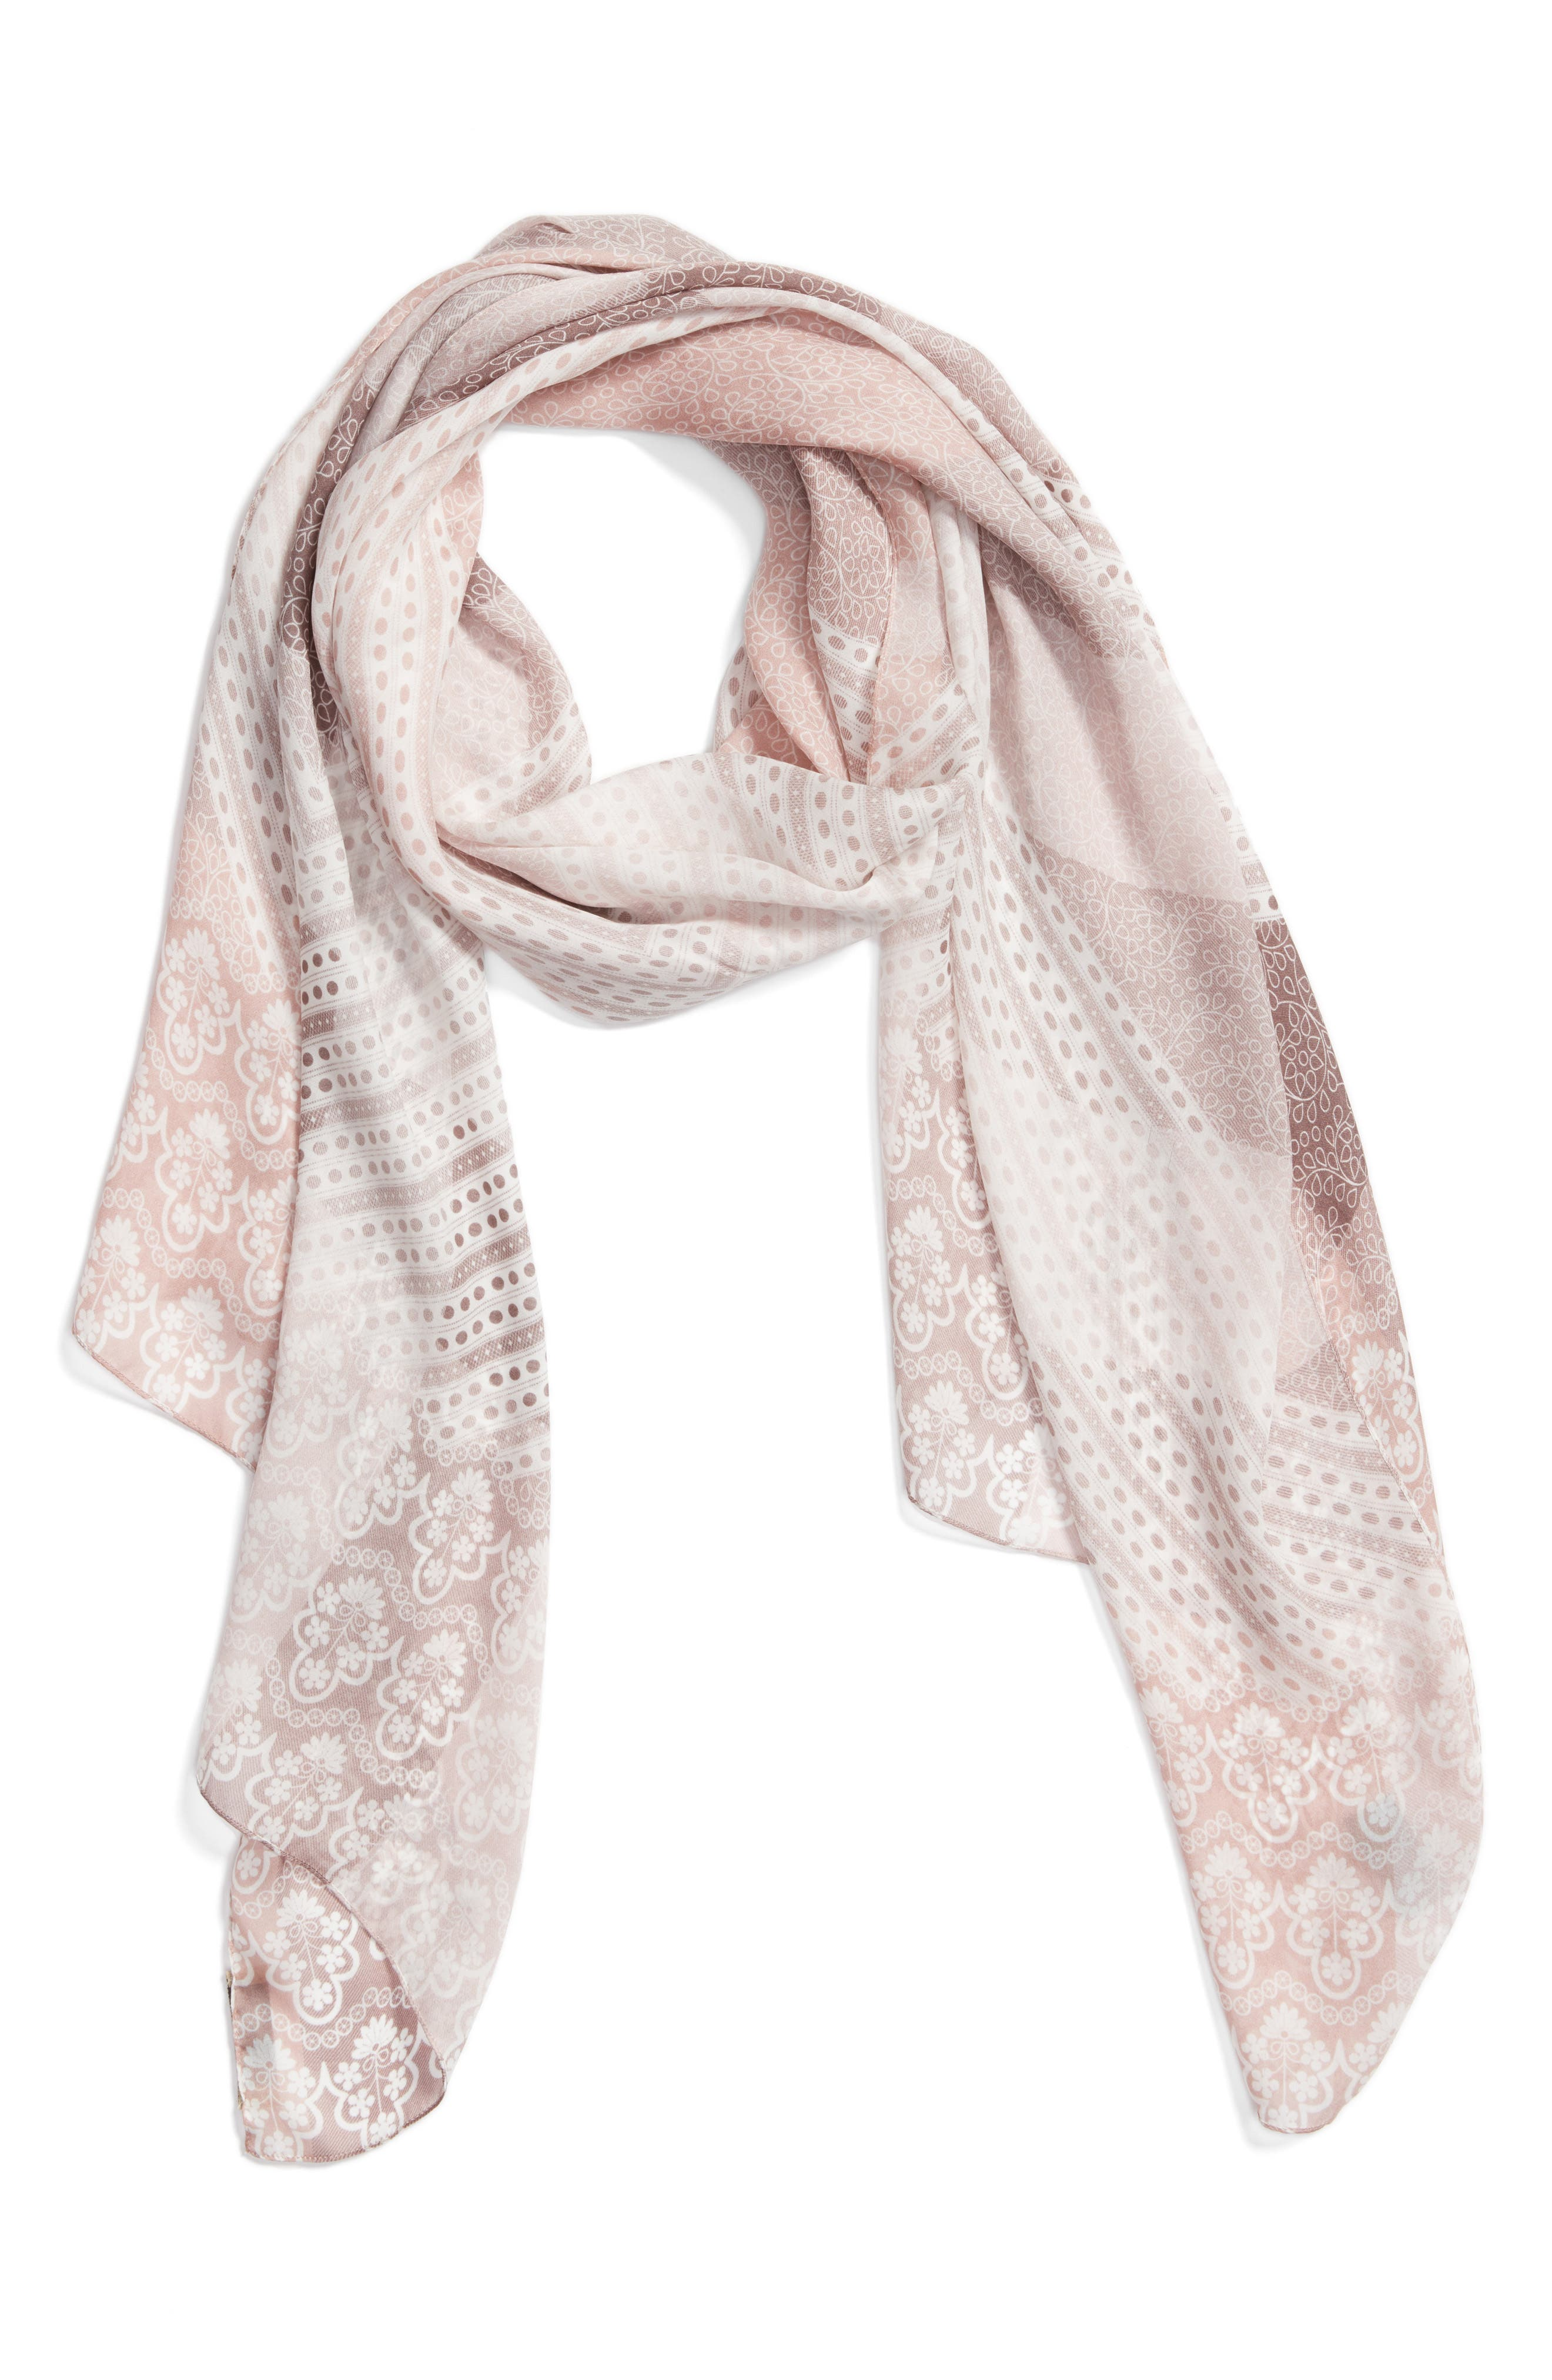 Ultra Mega Lace Silk Scarf,                         Main,                         color, Ash Rose Pink